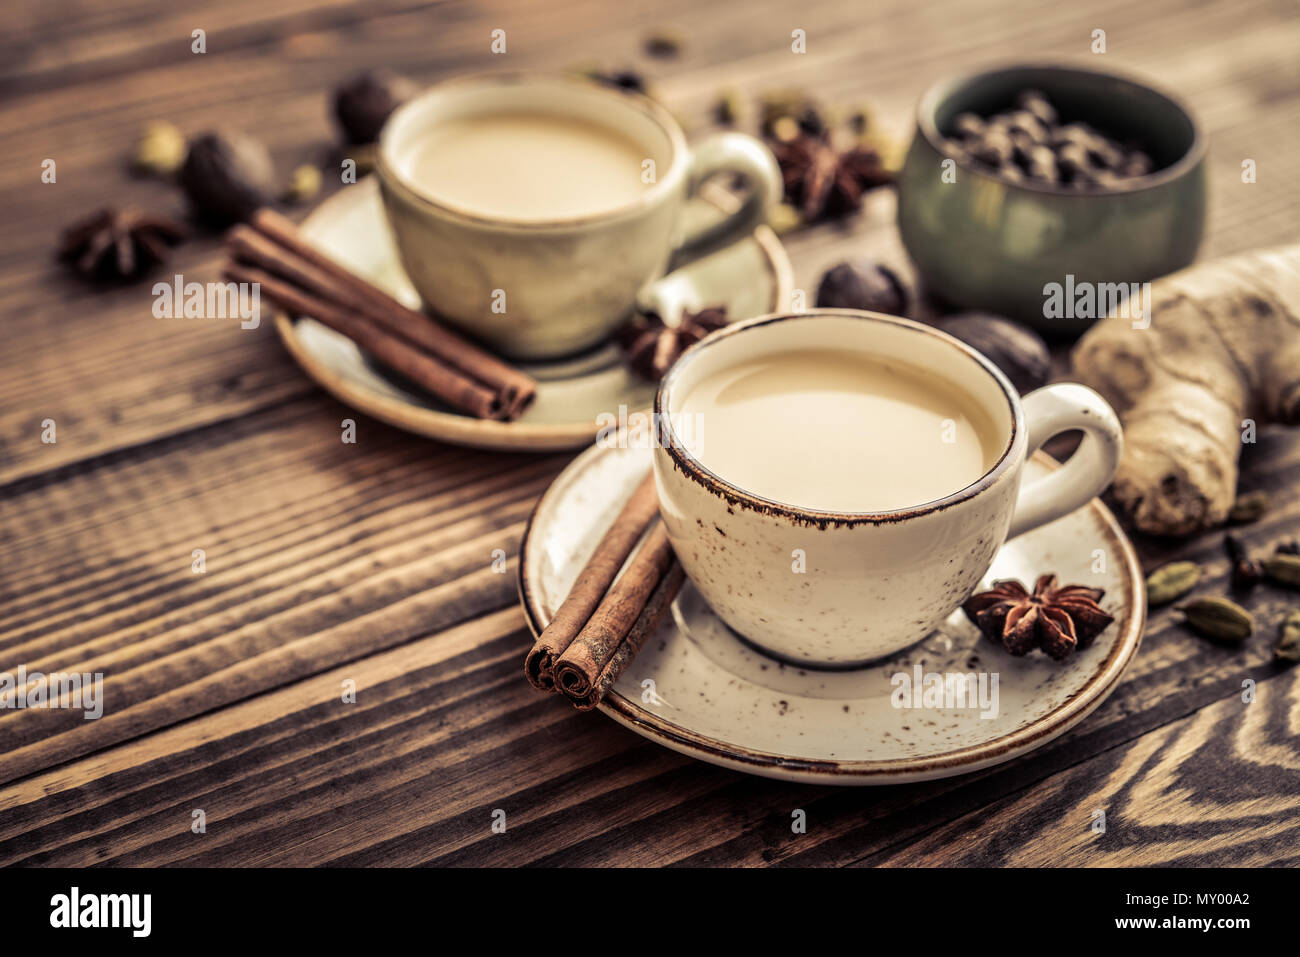 Traditional indian drink - masala chai tea (milk tea) with spices on wooden background Stock Photo